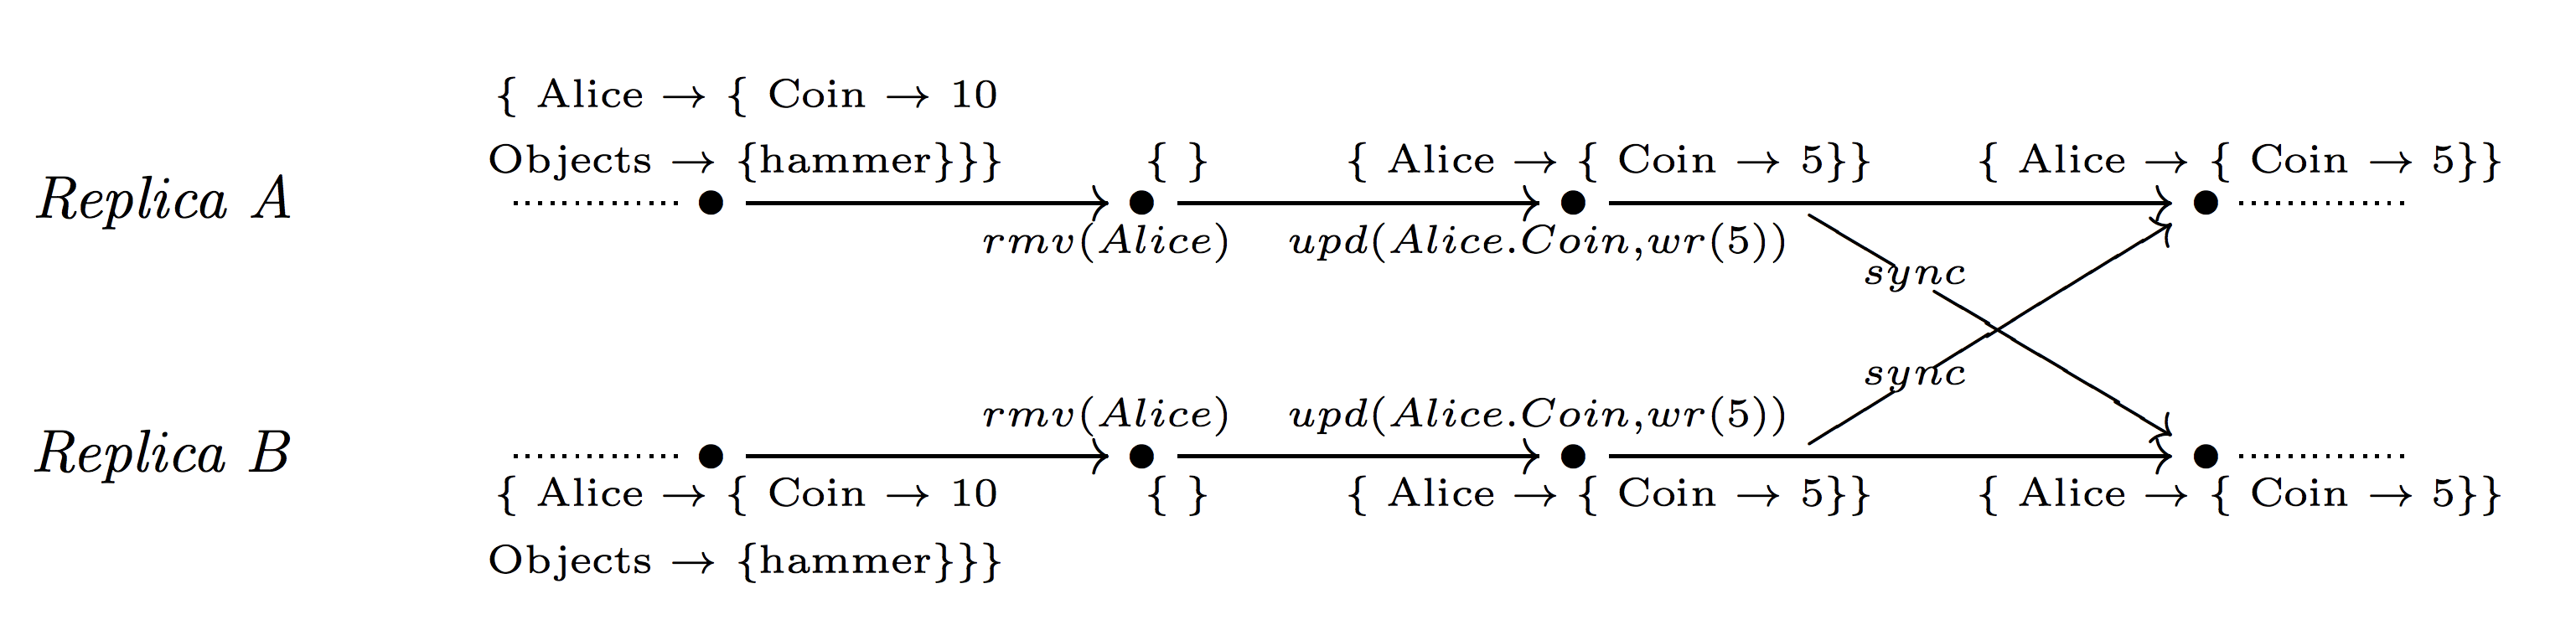 CRDT: Conflict-free Replicated Data Types - 25